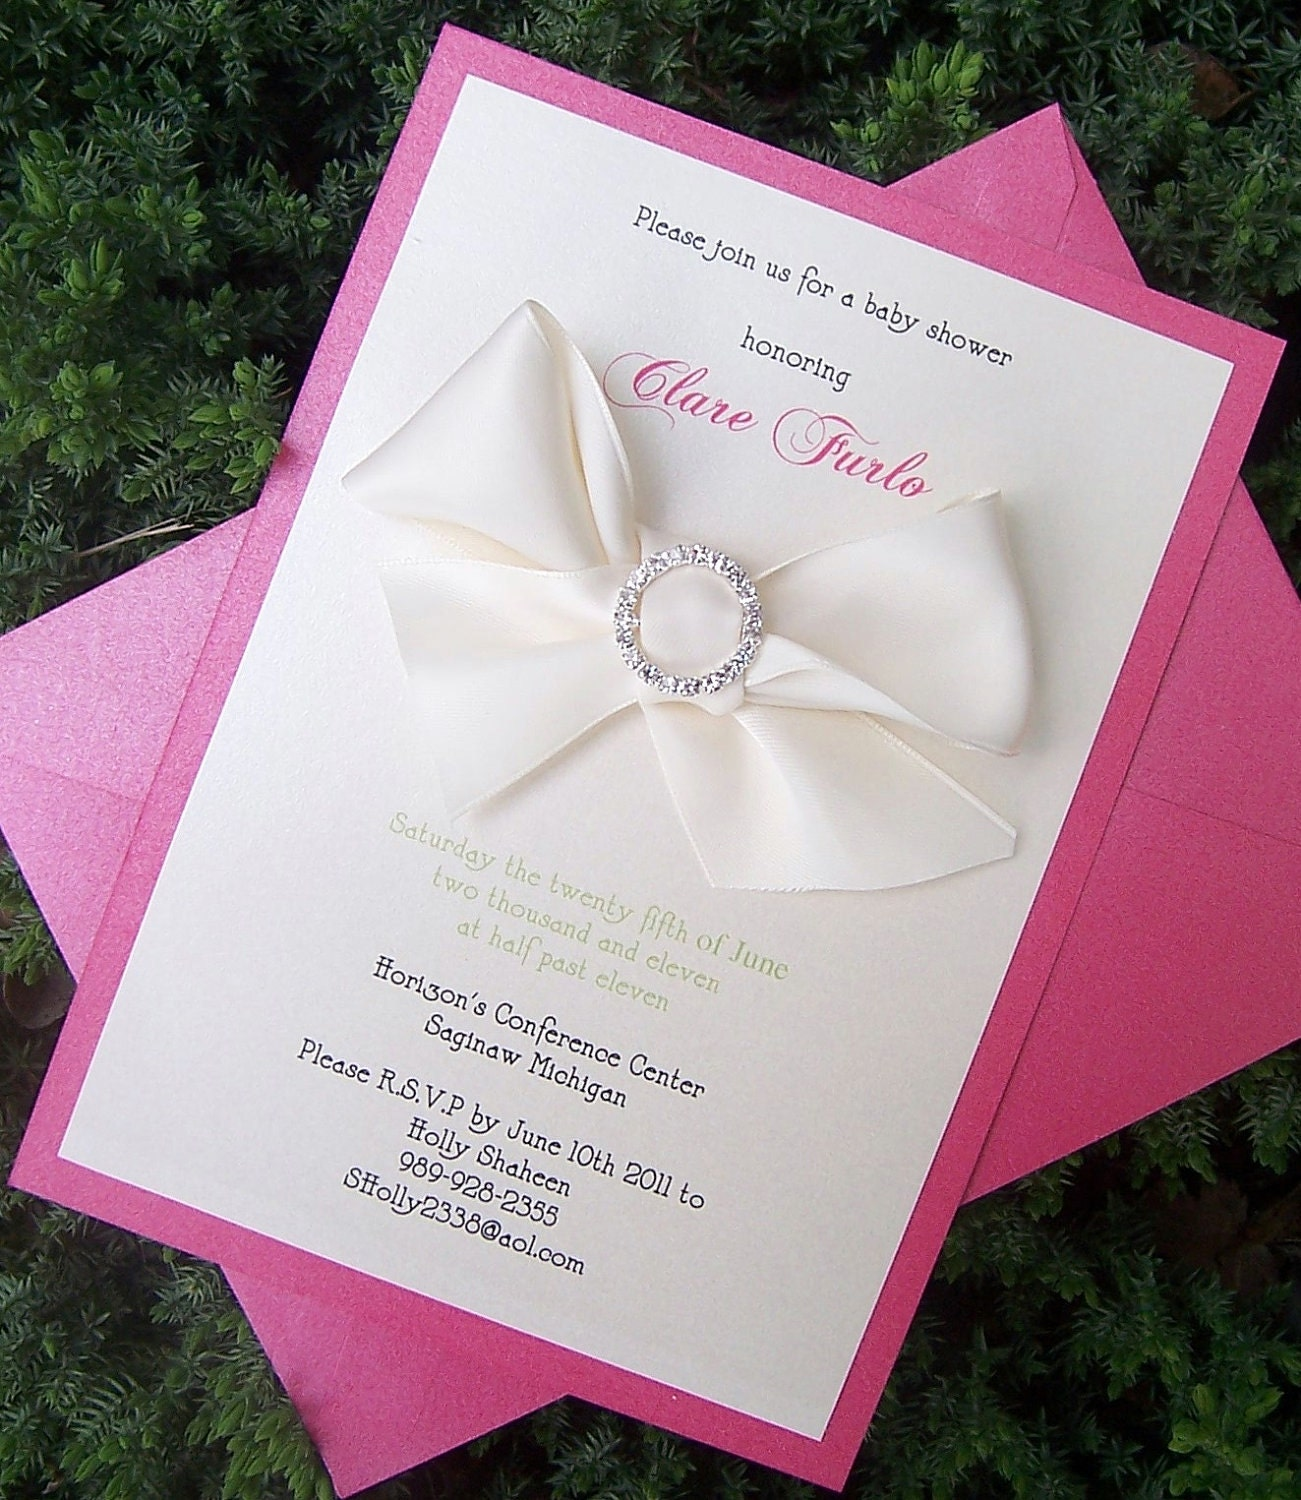 Personalised New Baby Or Birthday Card By Mint Nifty: Baby Shower Invitation Pink Shower Invitation Rhinestone